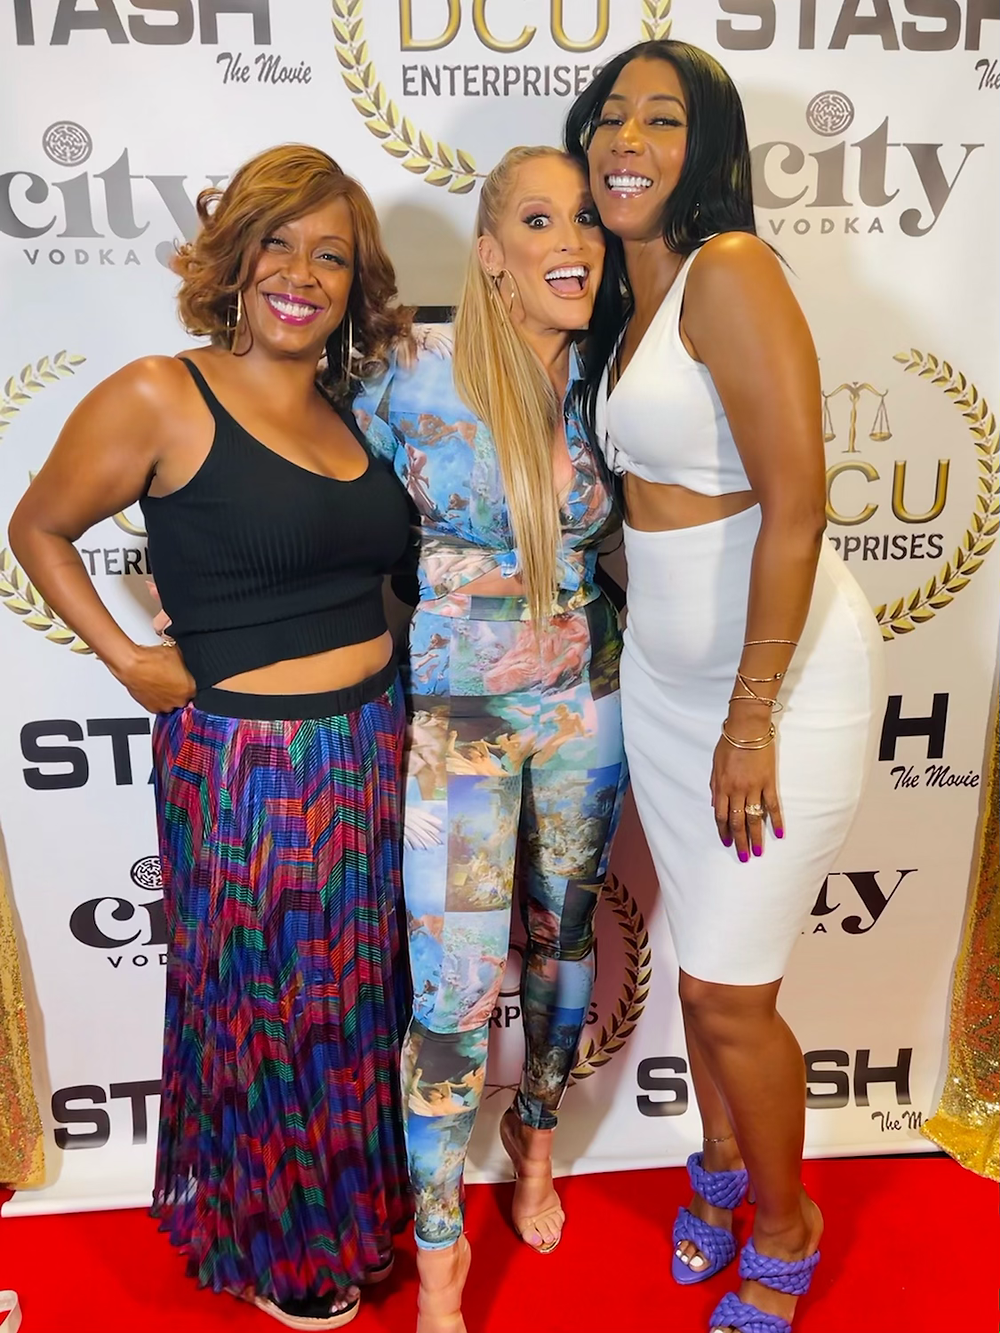 Photographer Lv Horton at the private screening of Stash the Movie with actress Nicole Katina and Noelene Moten